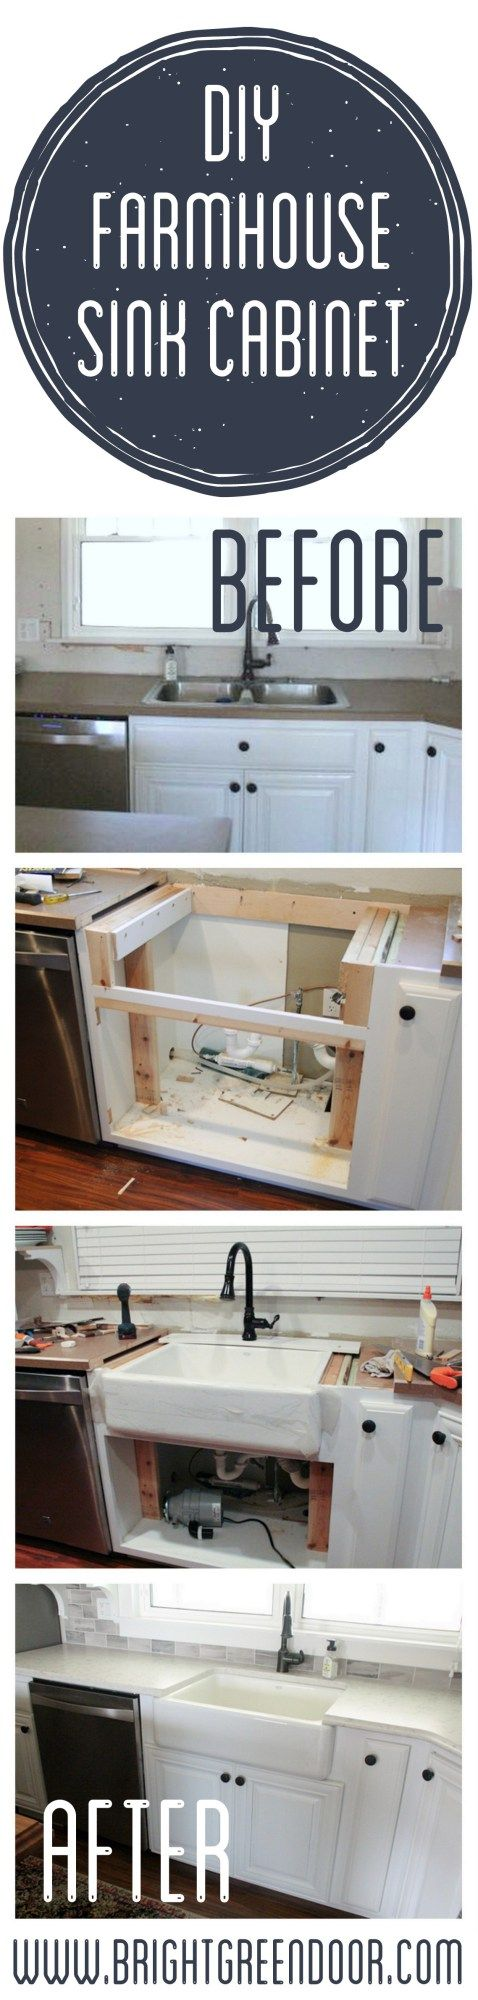 DIY:  How to Install a Farmhouse Sink - this post shows how a cabinet was modified to fit a new sink - via Bright Green Door